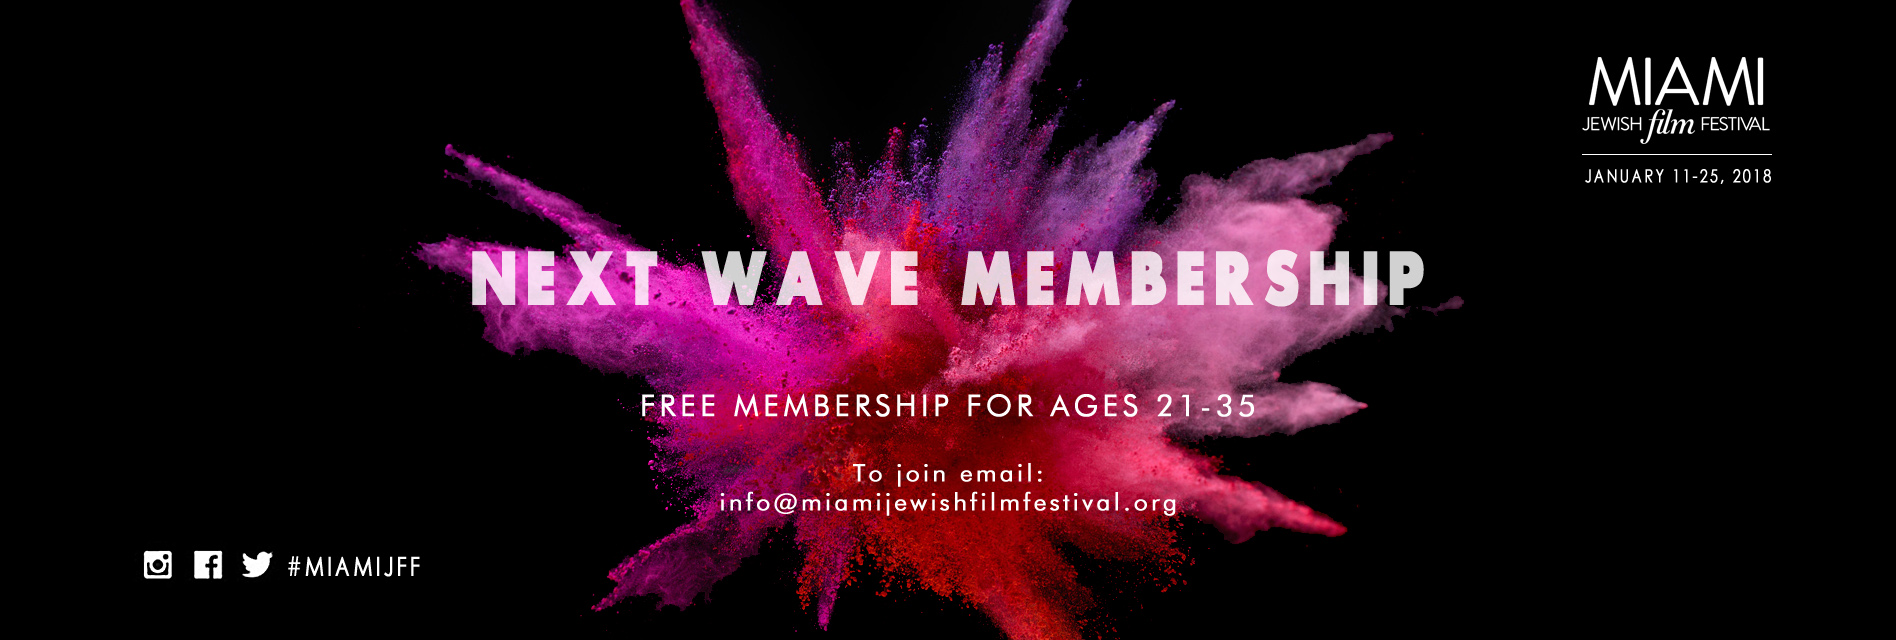 Join the Next Wave